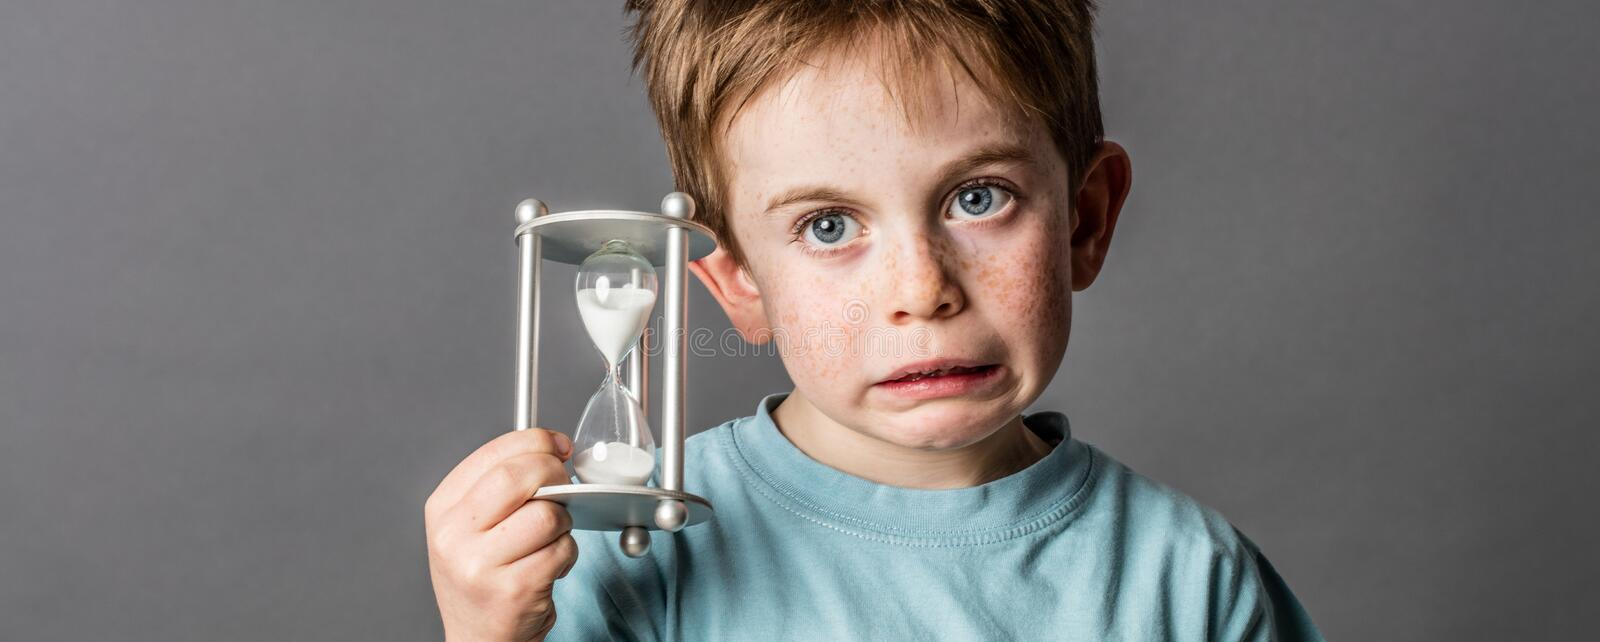 Little boy with questioning eyes holding a scary egg timer royalty free stock photo